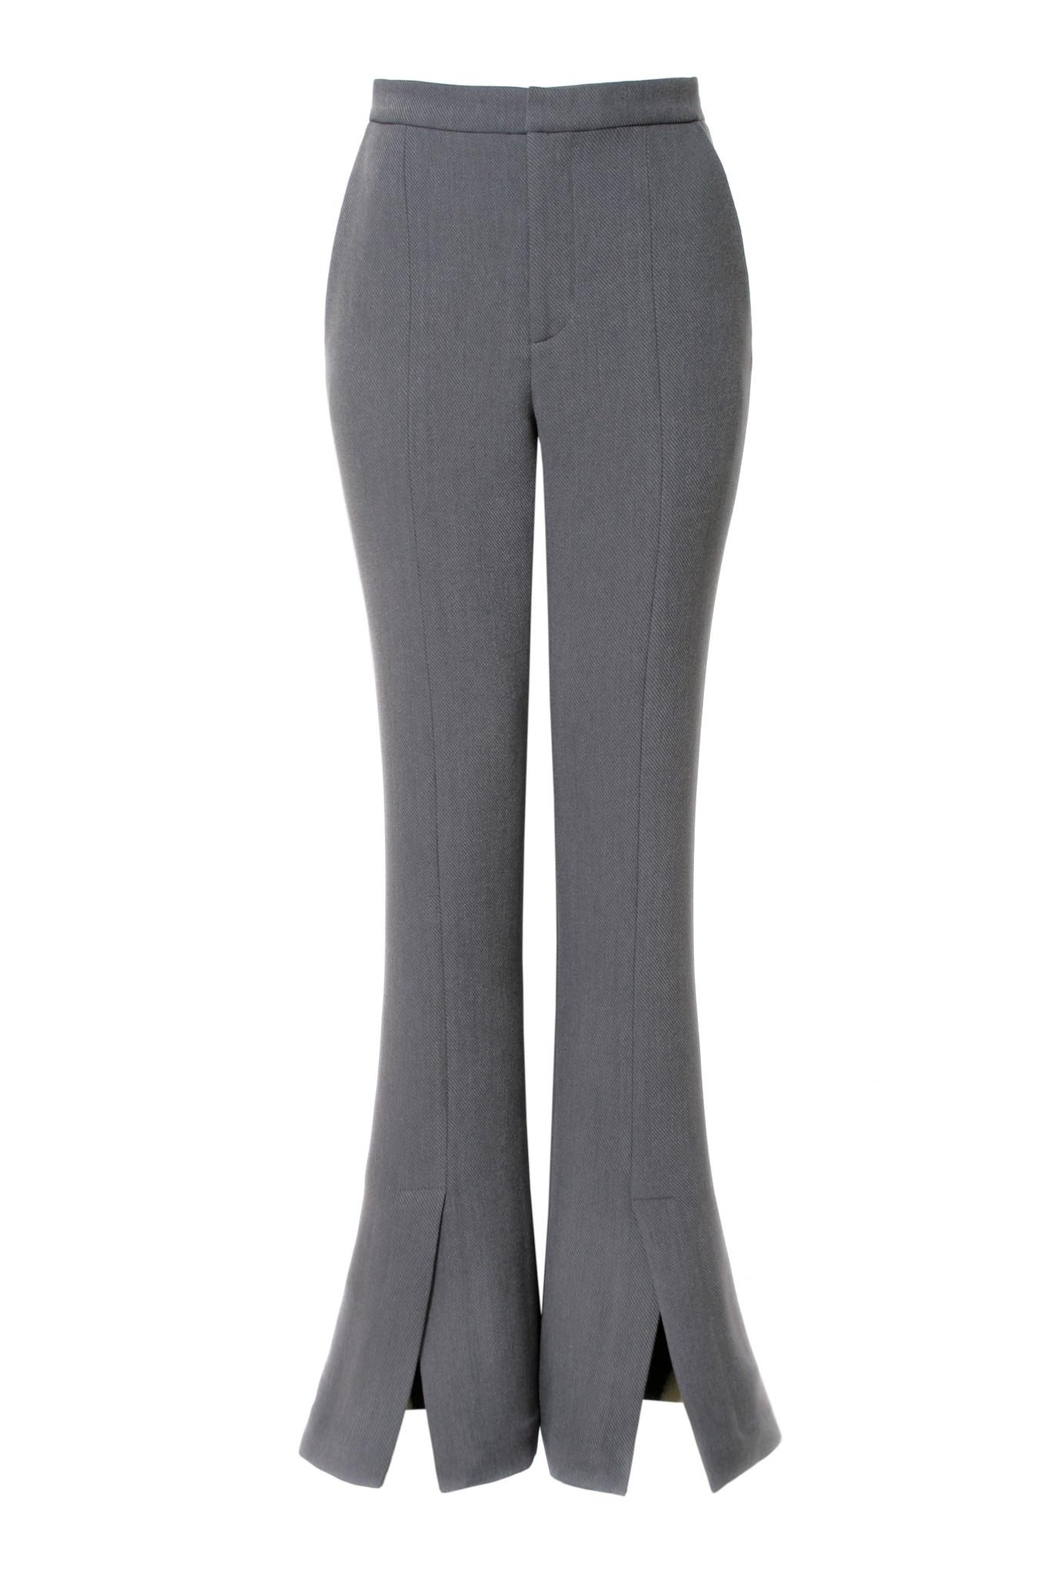 AGGI Pants Monica Baltic Grey - Height 175 - Front Full Image